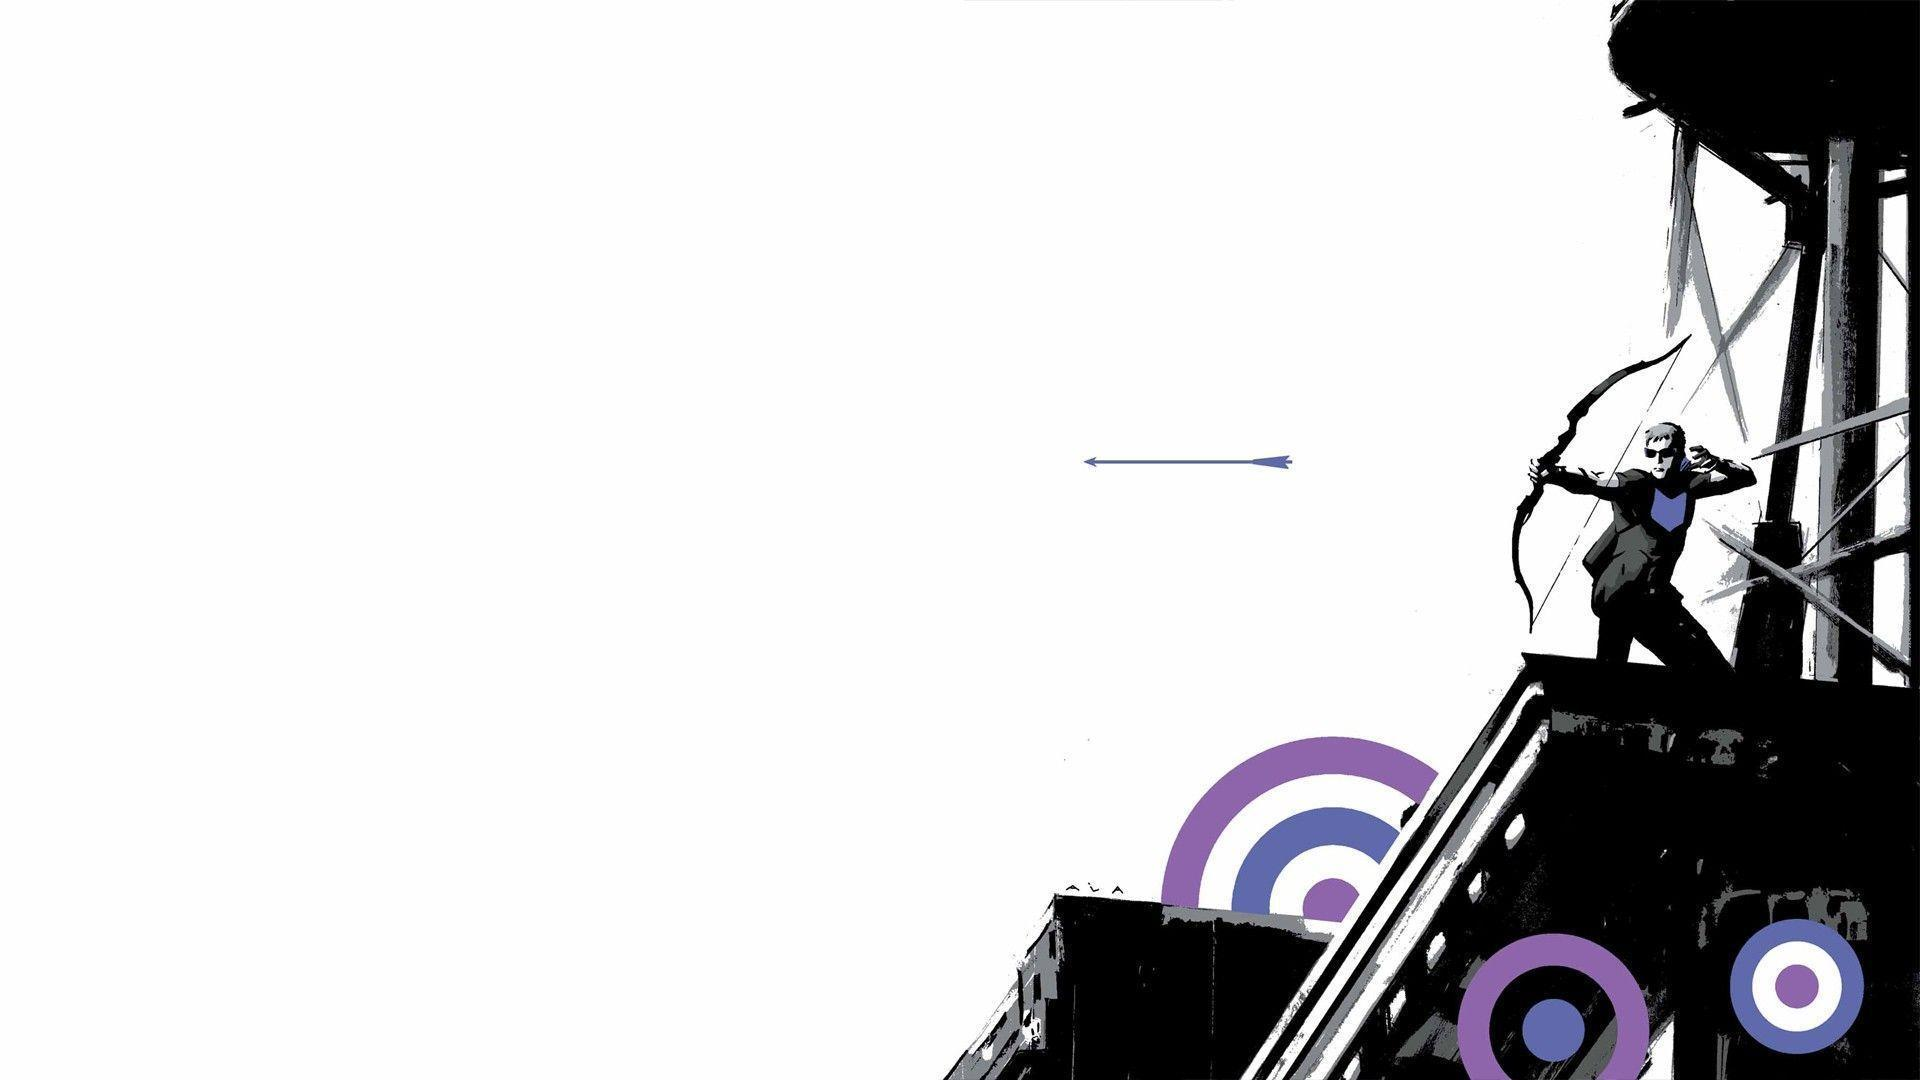 hawkeye wallpapers page - photo #2